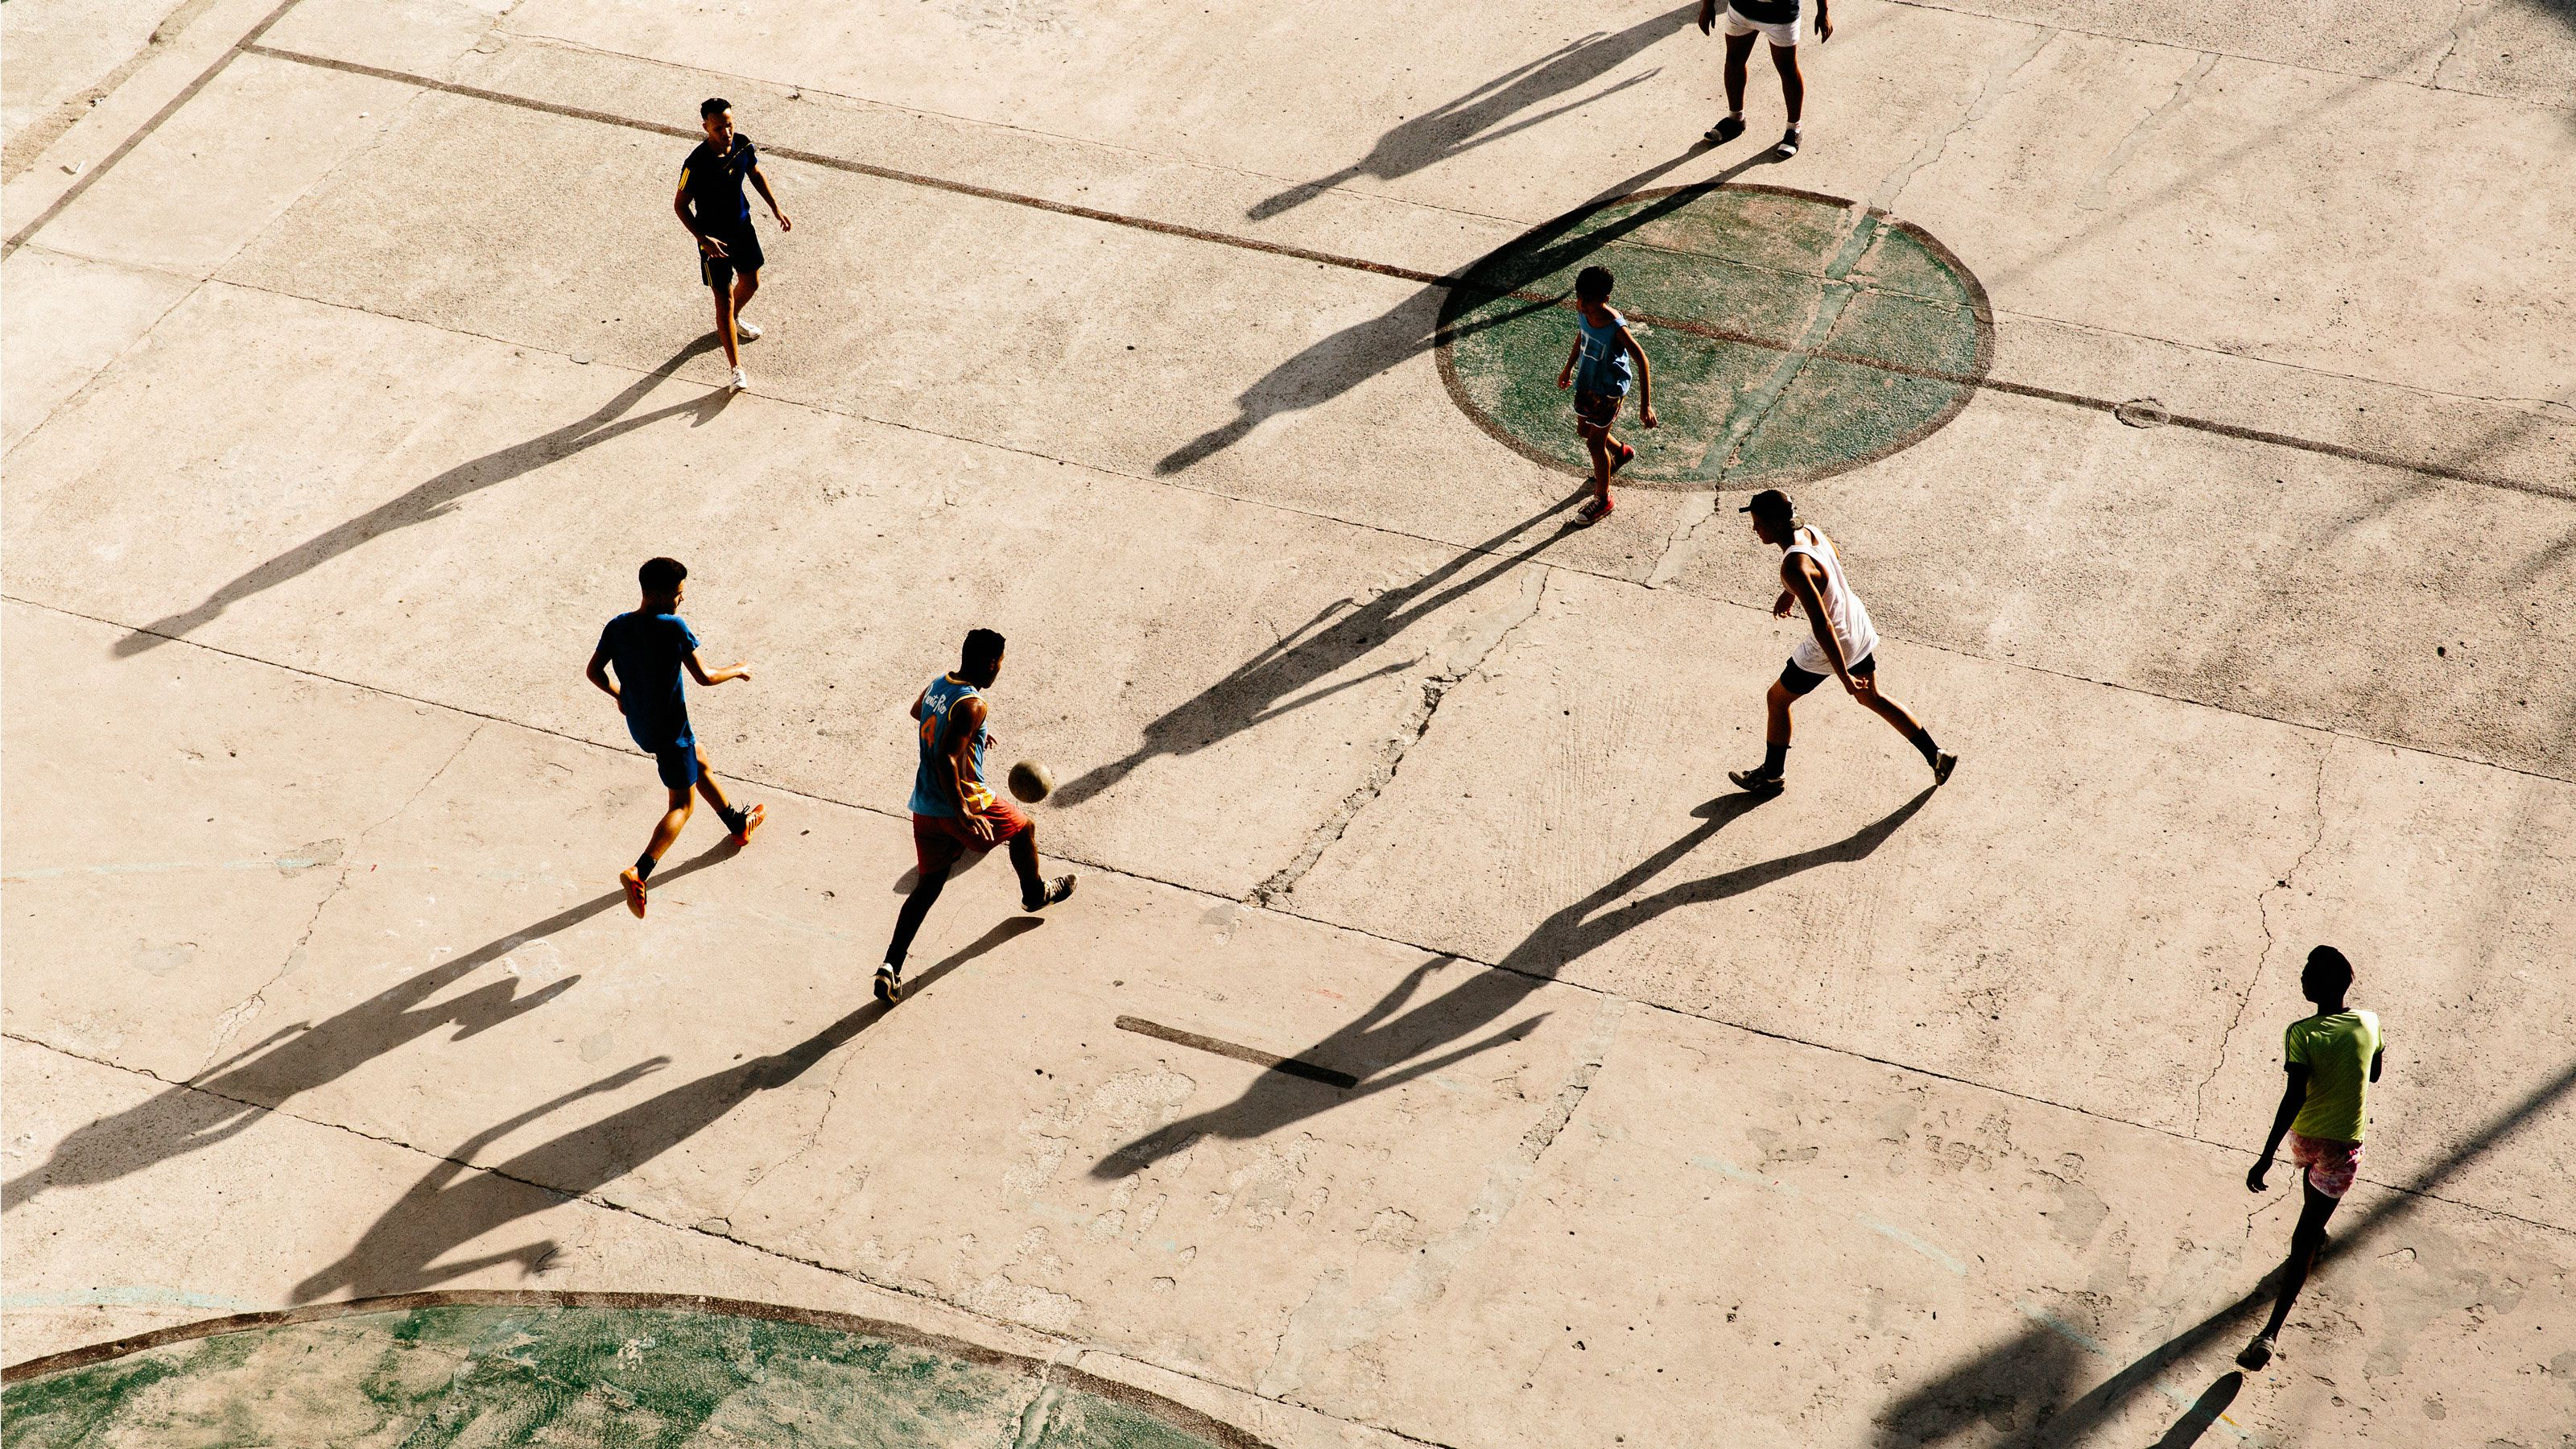 Pick-up soccer in Havana. Soccer's experiencing a long-awaited popularity in Cuba thanks largely to World Cups and European leagues being broadcast on the island. (Photo: Emiliano Granado)